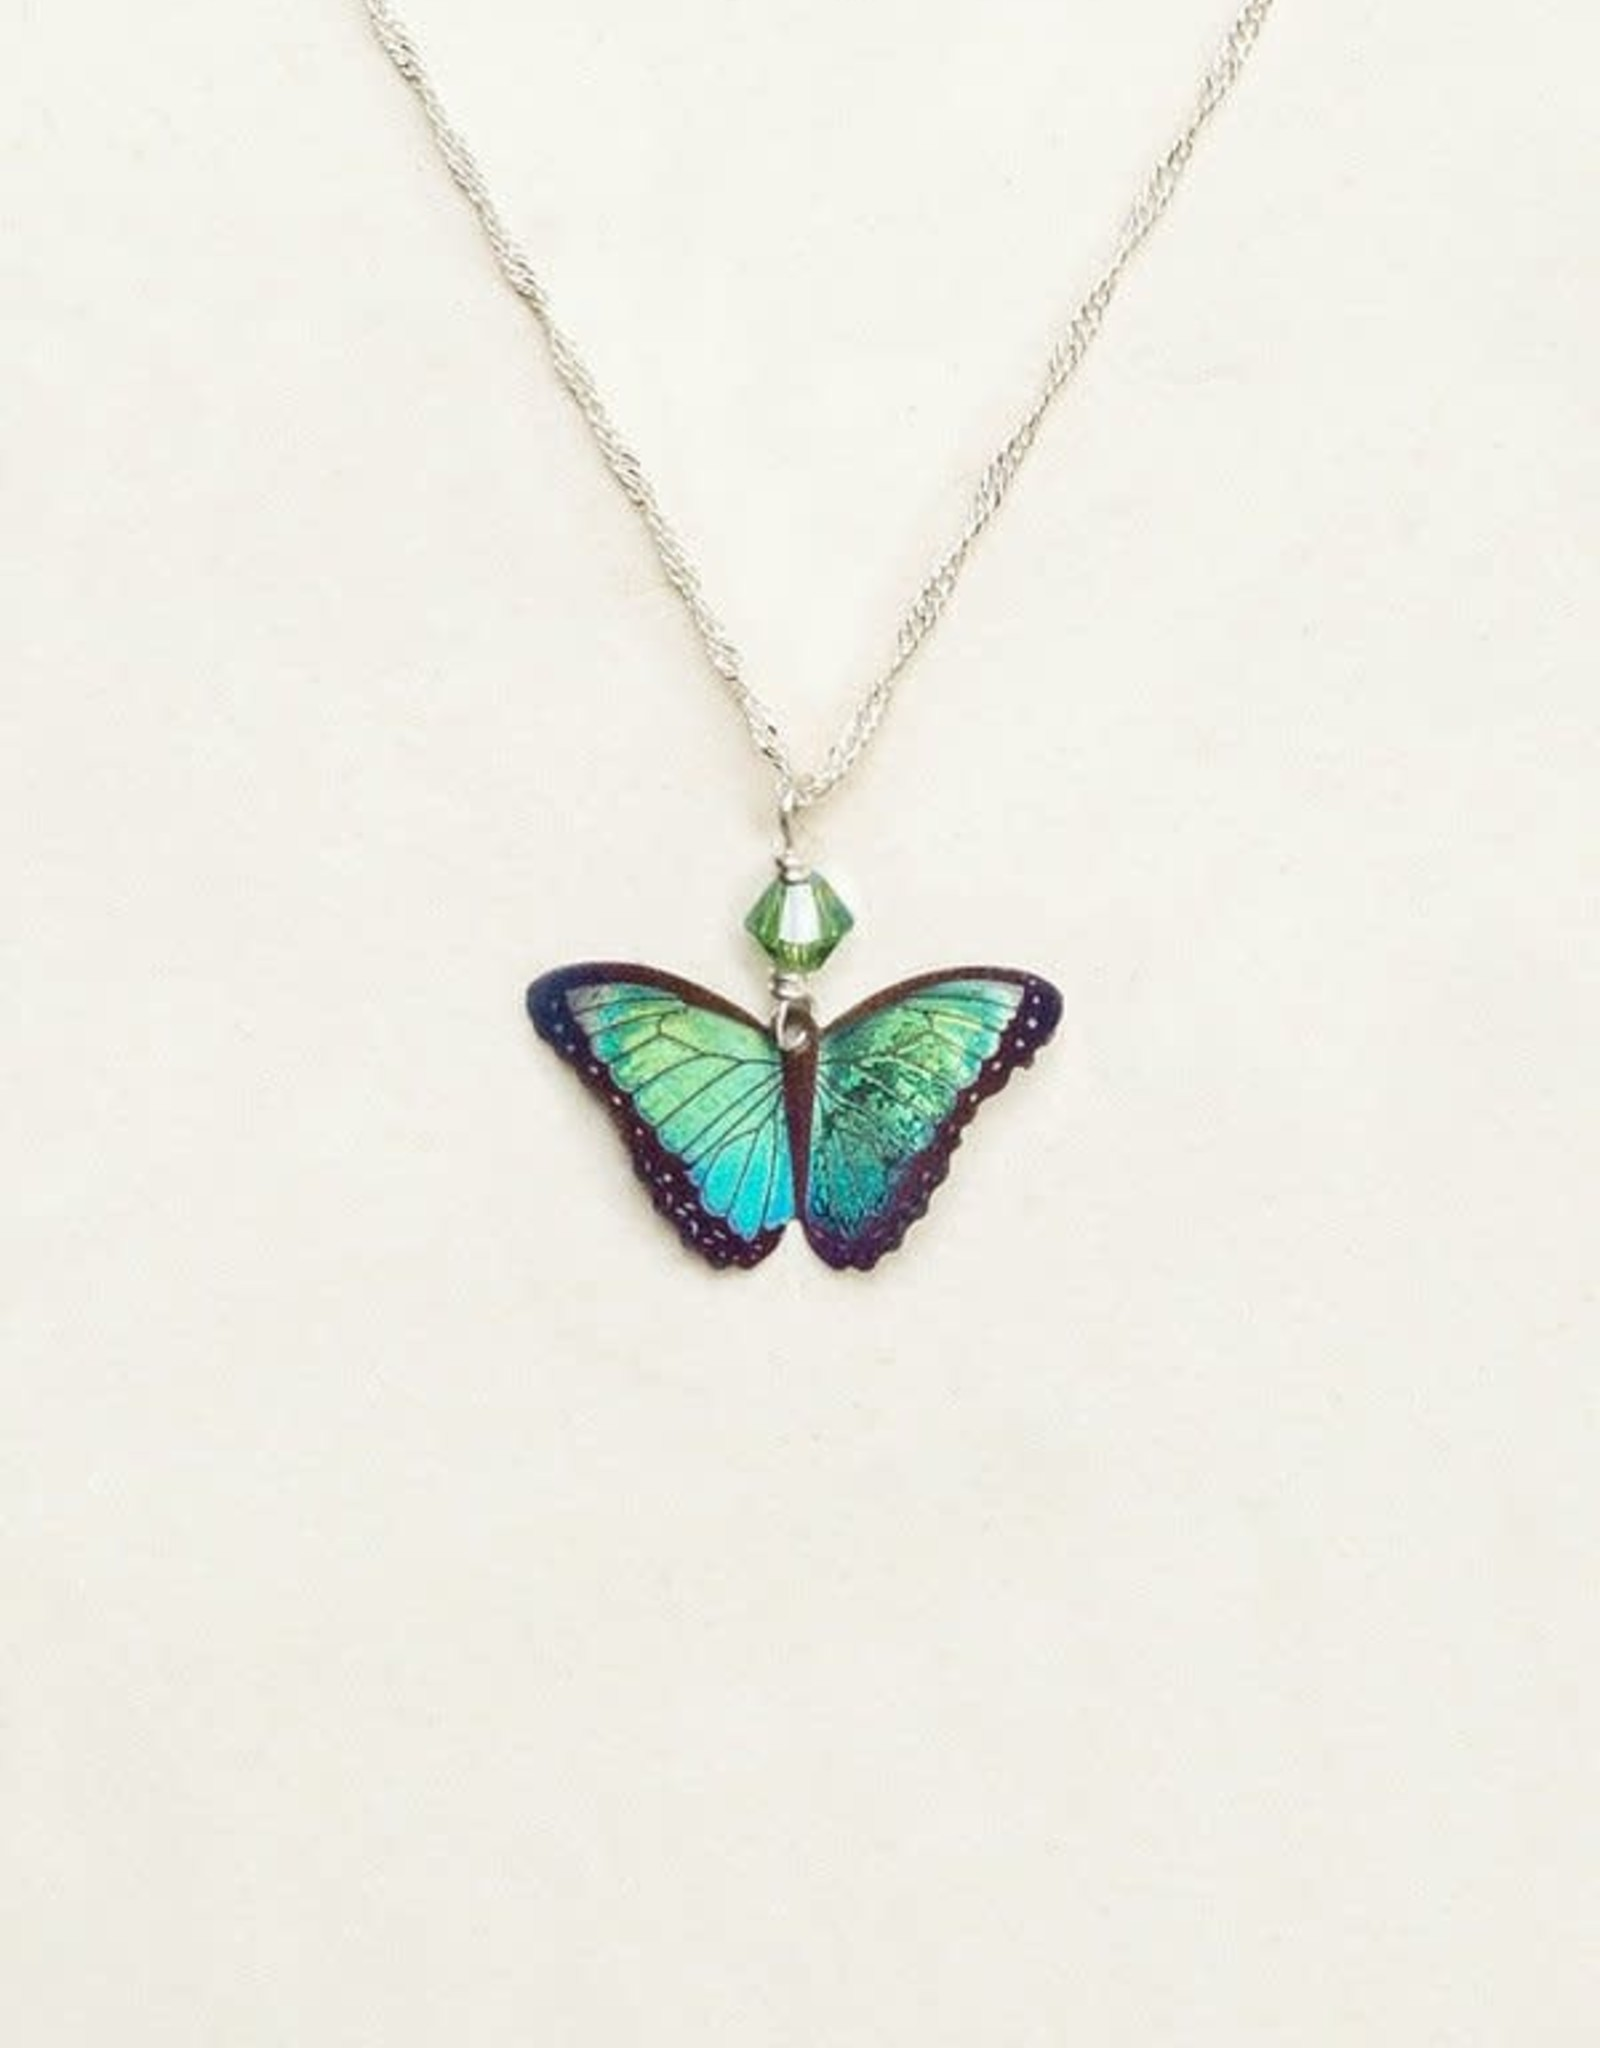 Holly Yashi Island Green Bella Butterfly Pendant Necklace